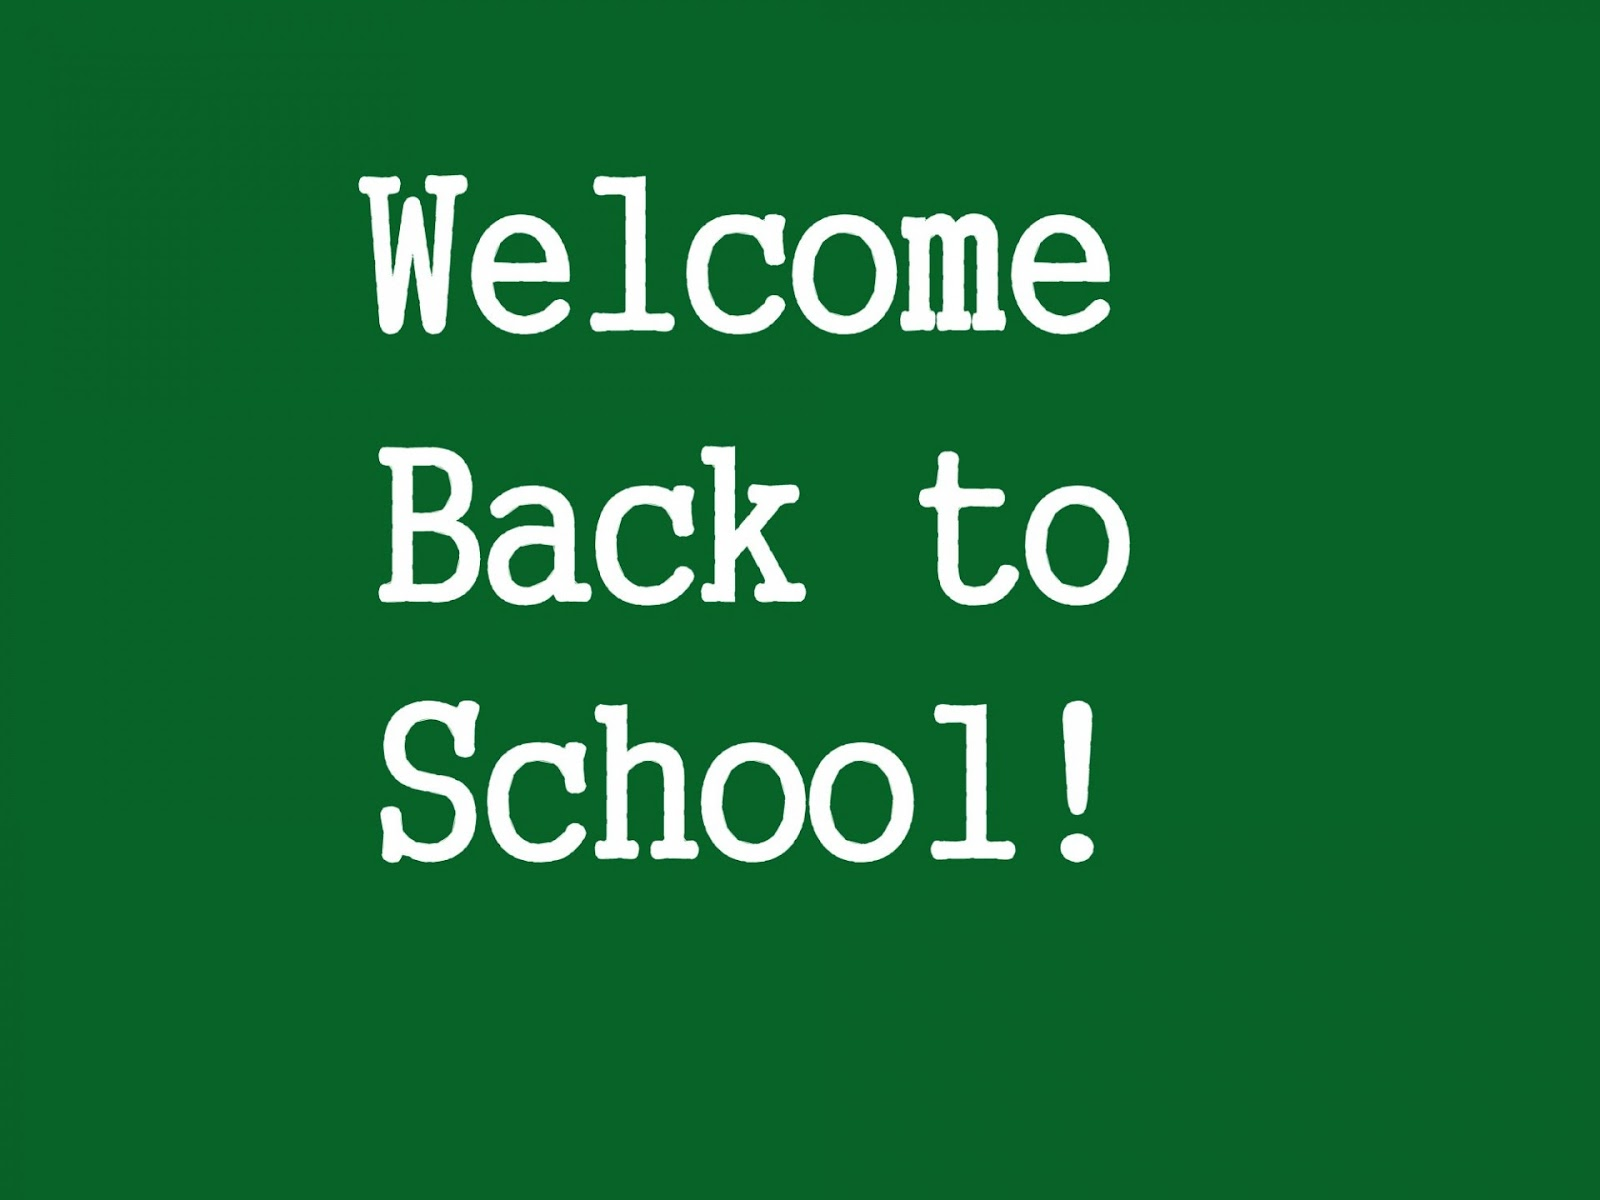 Welcome Back To School Free Stock Photo - Public Domain Pictures